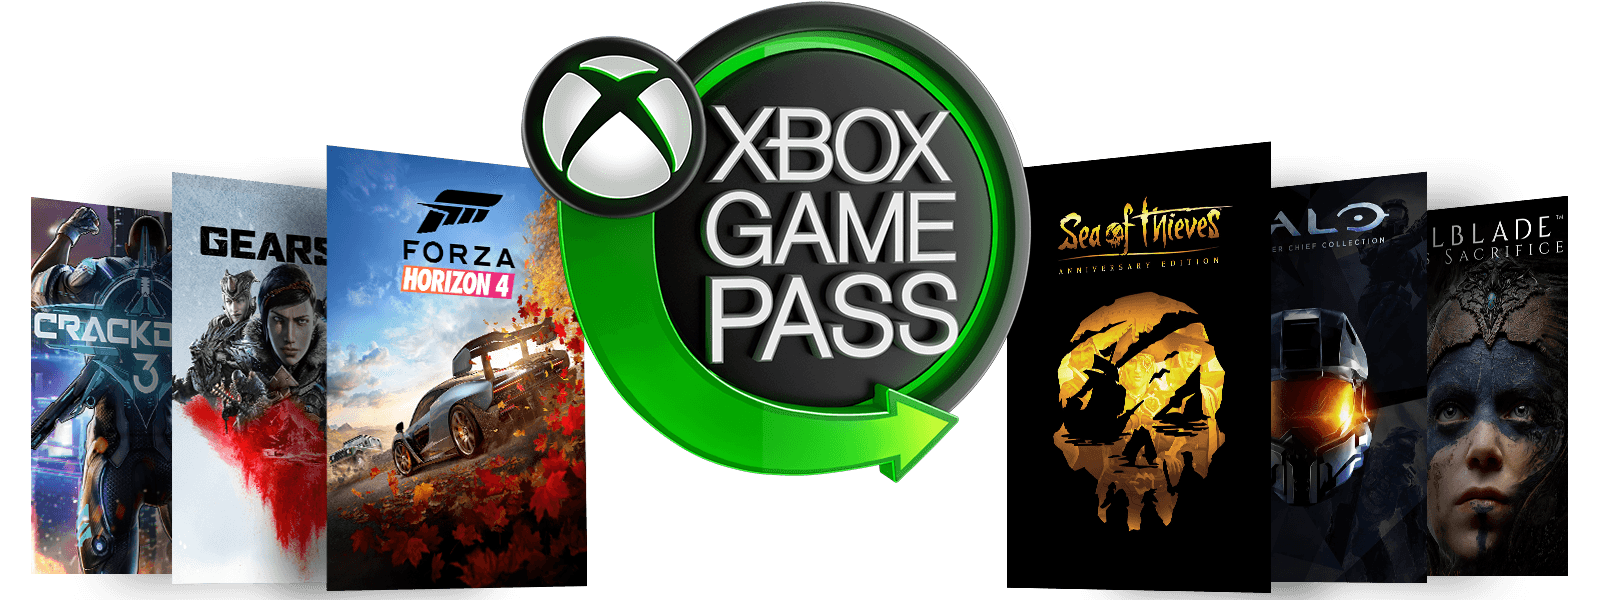 Zdjęcia opakowań gier Sea of Thieves, PLAYERUNKNOWNS Battleground, Forza Horizon 4, Crackdown 3, Halo The Master Chief Collection i Hellblade Senuas Sacrifice wokół neonowego logo Xbox Game Pass